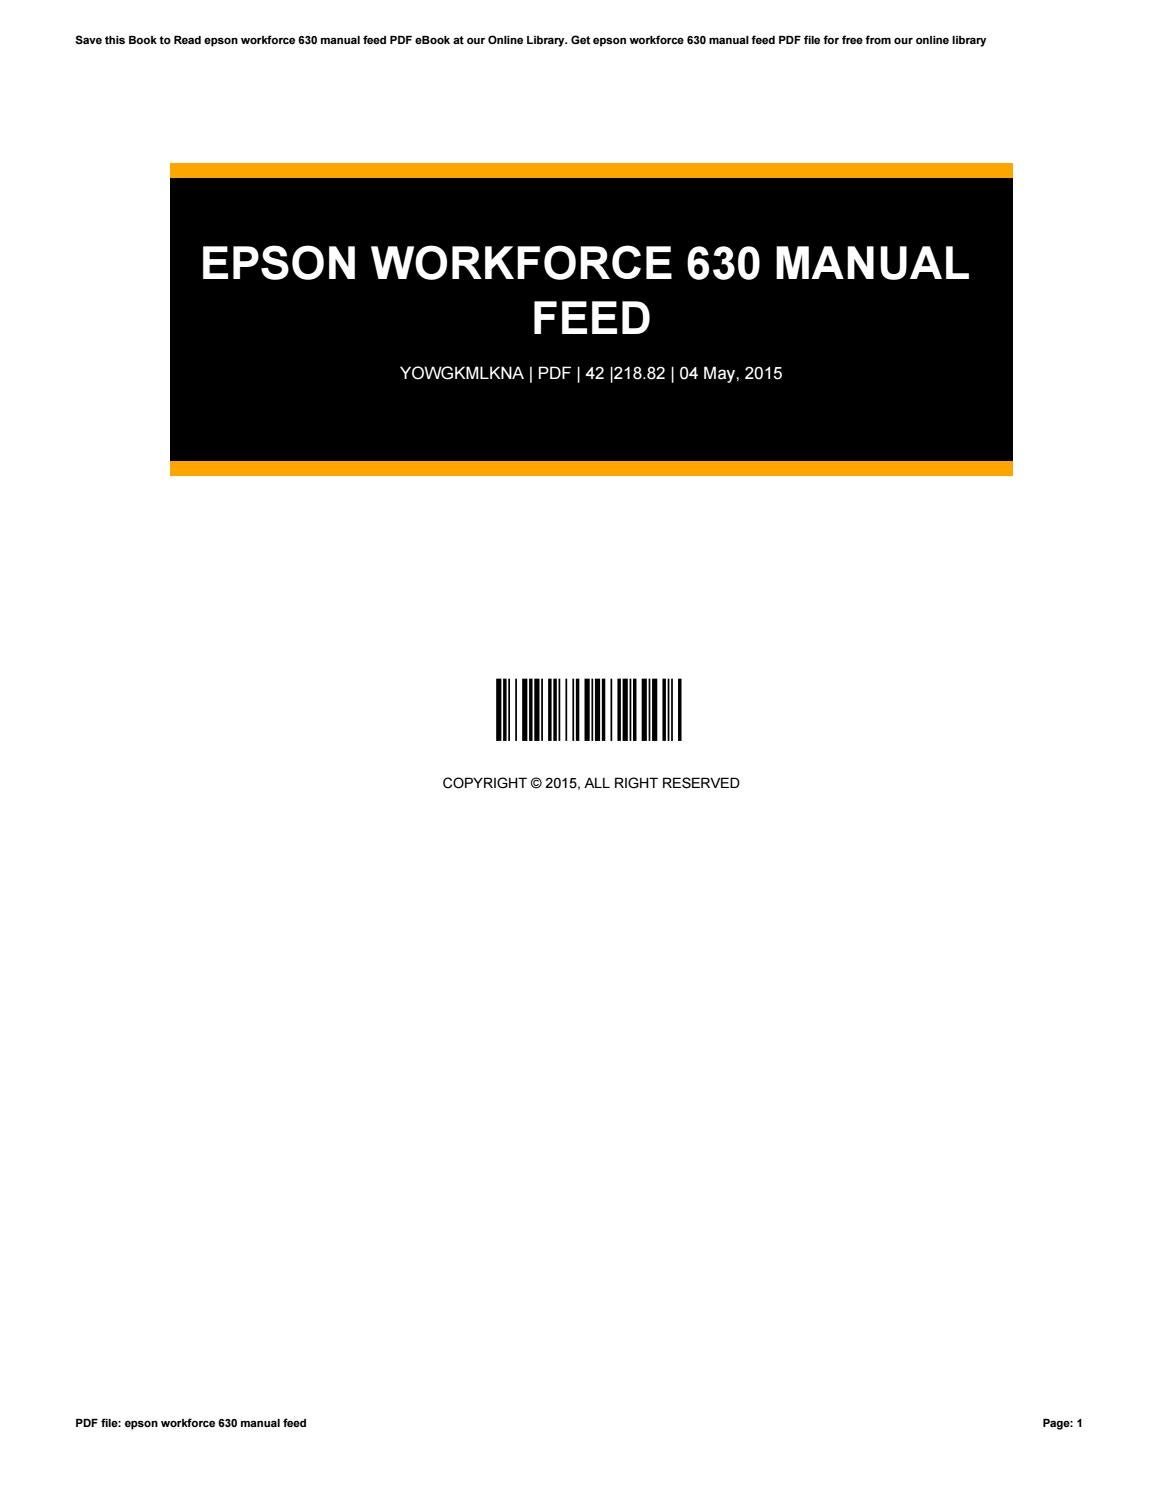 How to manual feed Epson 4880